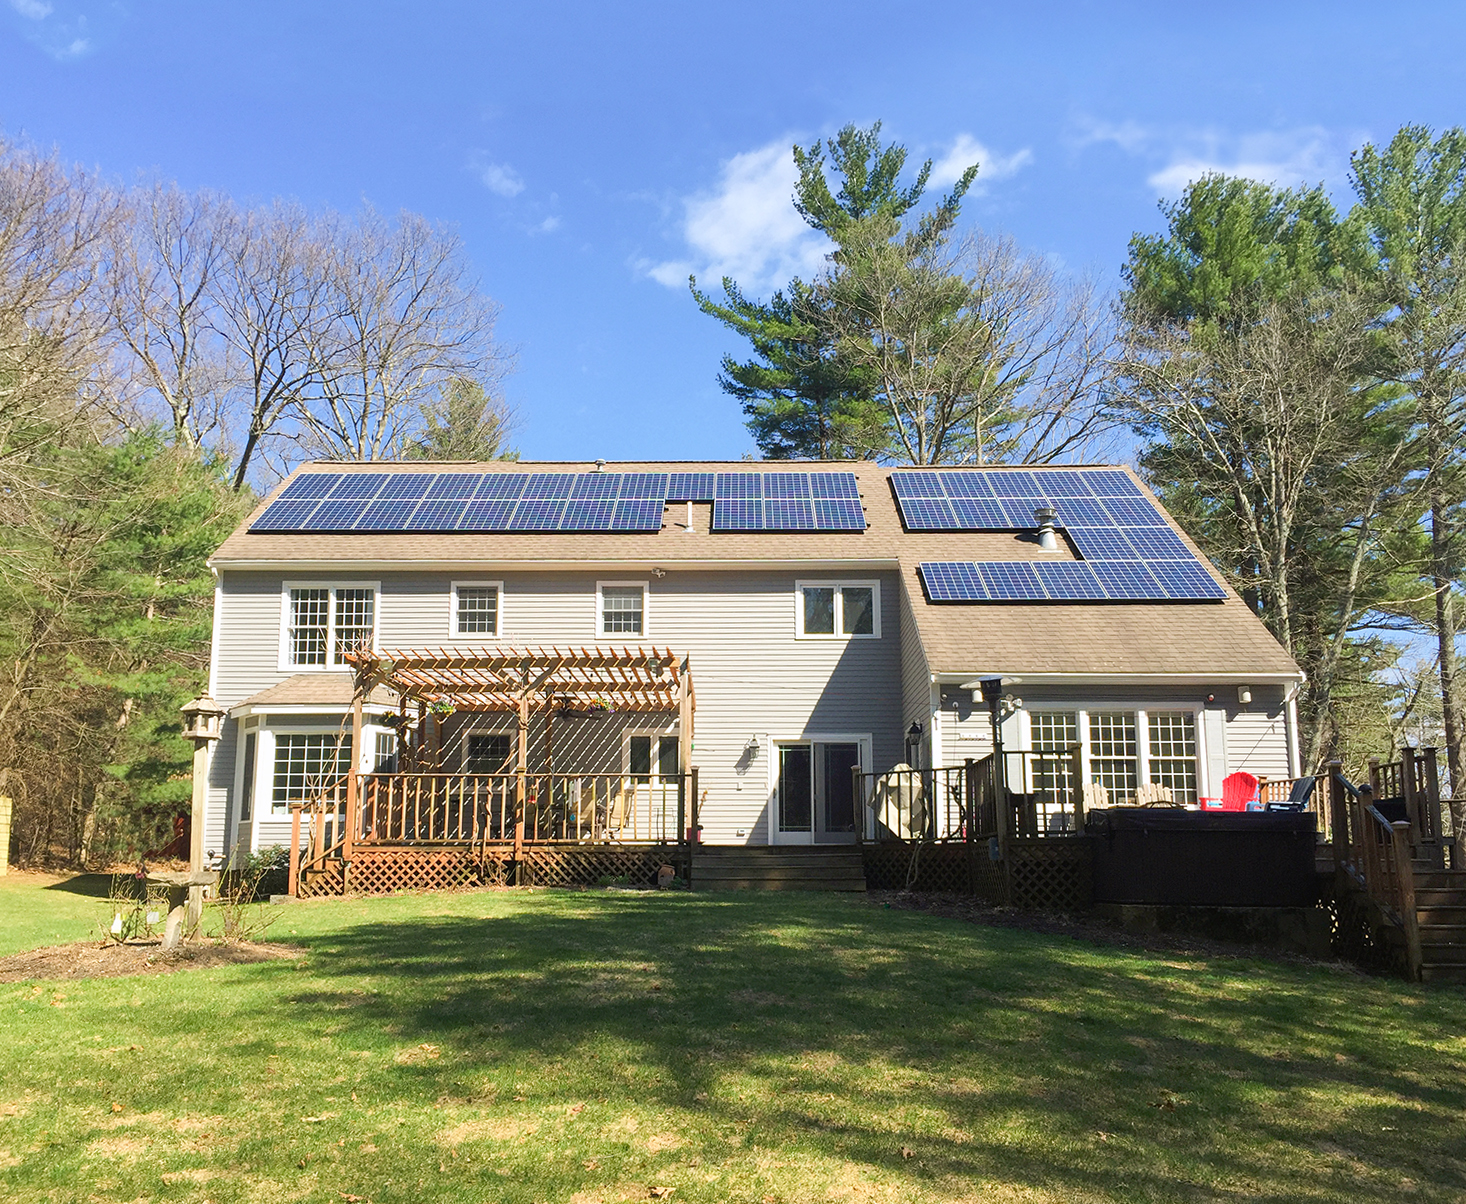 Solar Electric Panels For Homes In Me Nh Ma Revision Energy Electricityhow To Map House Electrical Wiring Two Boys Play Outside Enjoying The Sun As Their Produces Electricity With Installed By